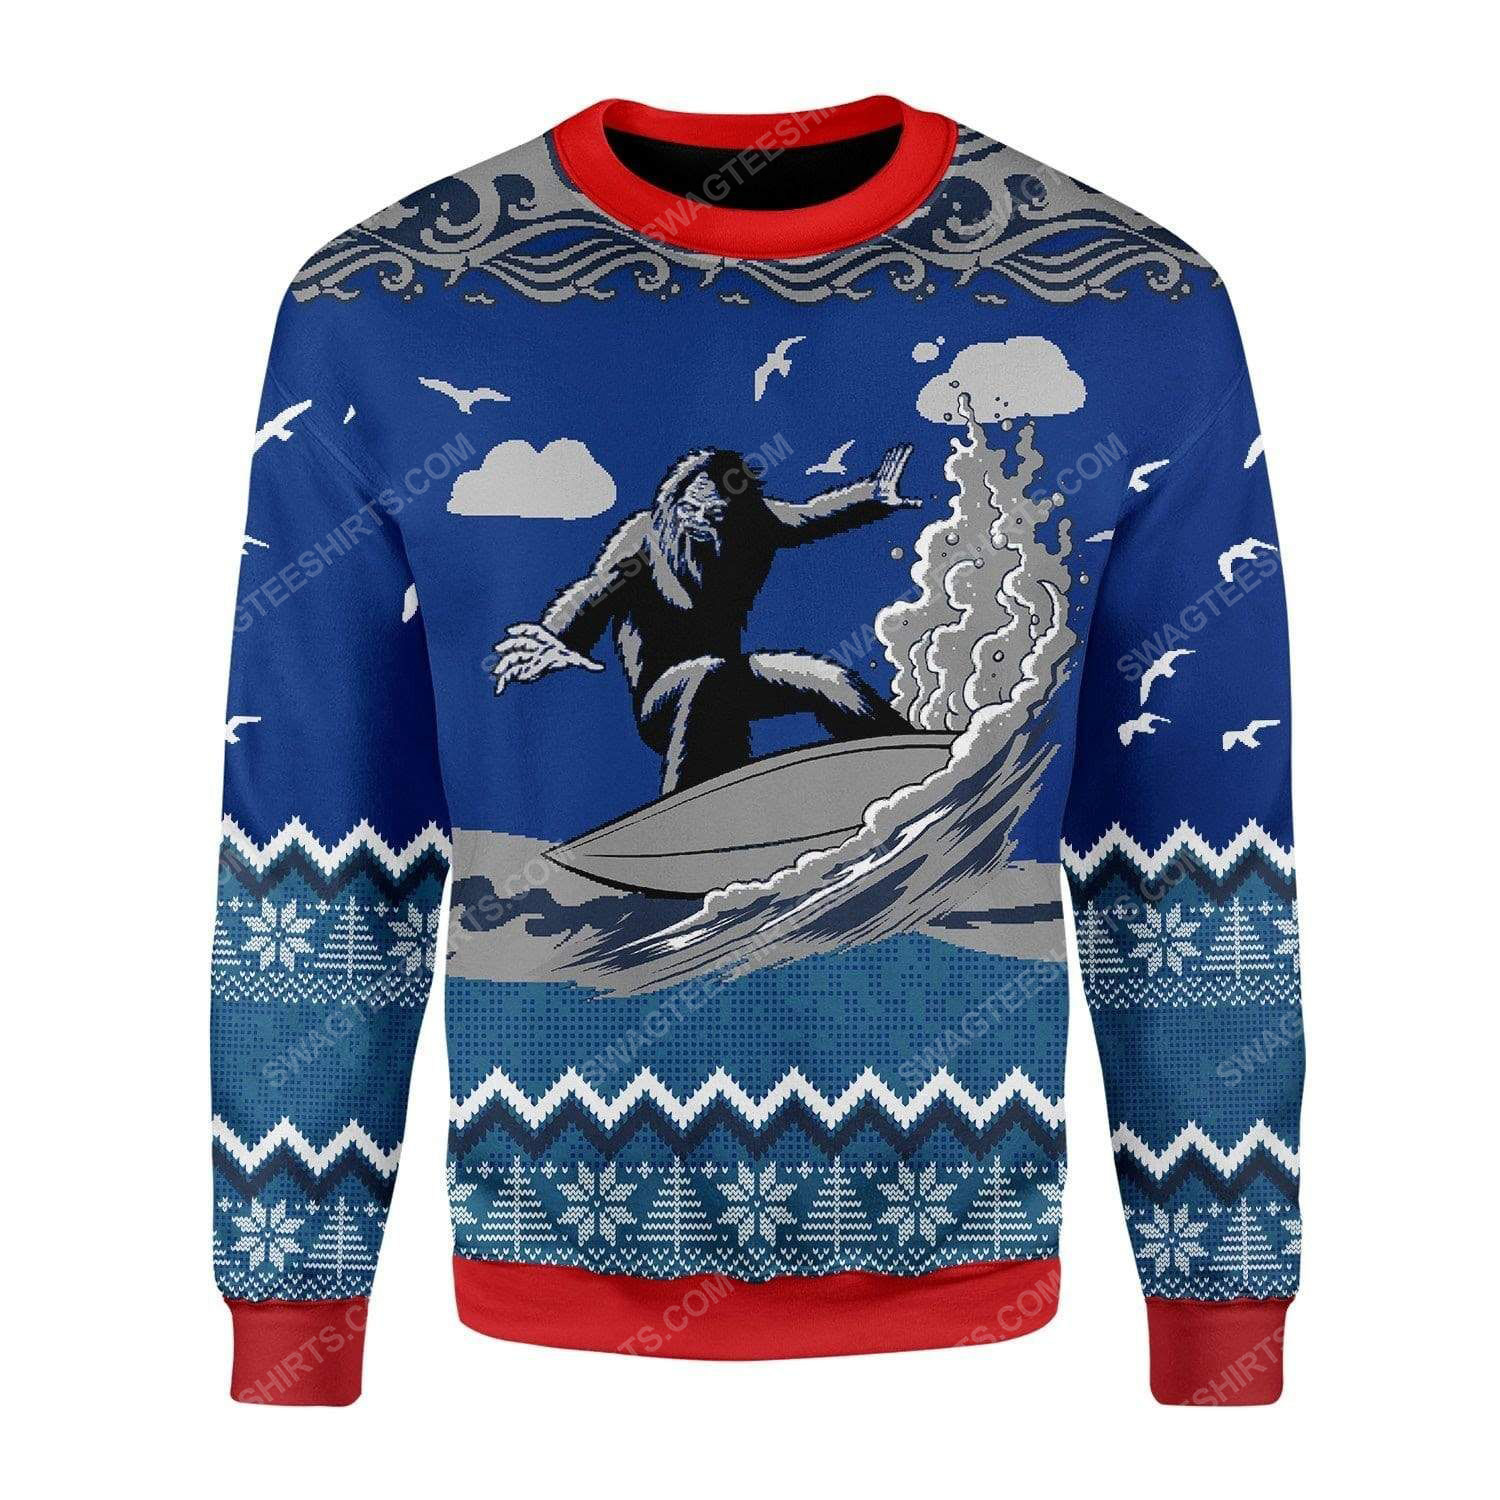 Bigfoot surfing all over print ugly christmas sweater 2 - Copy